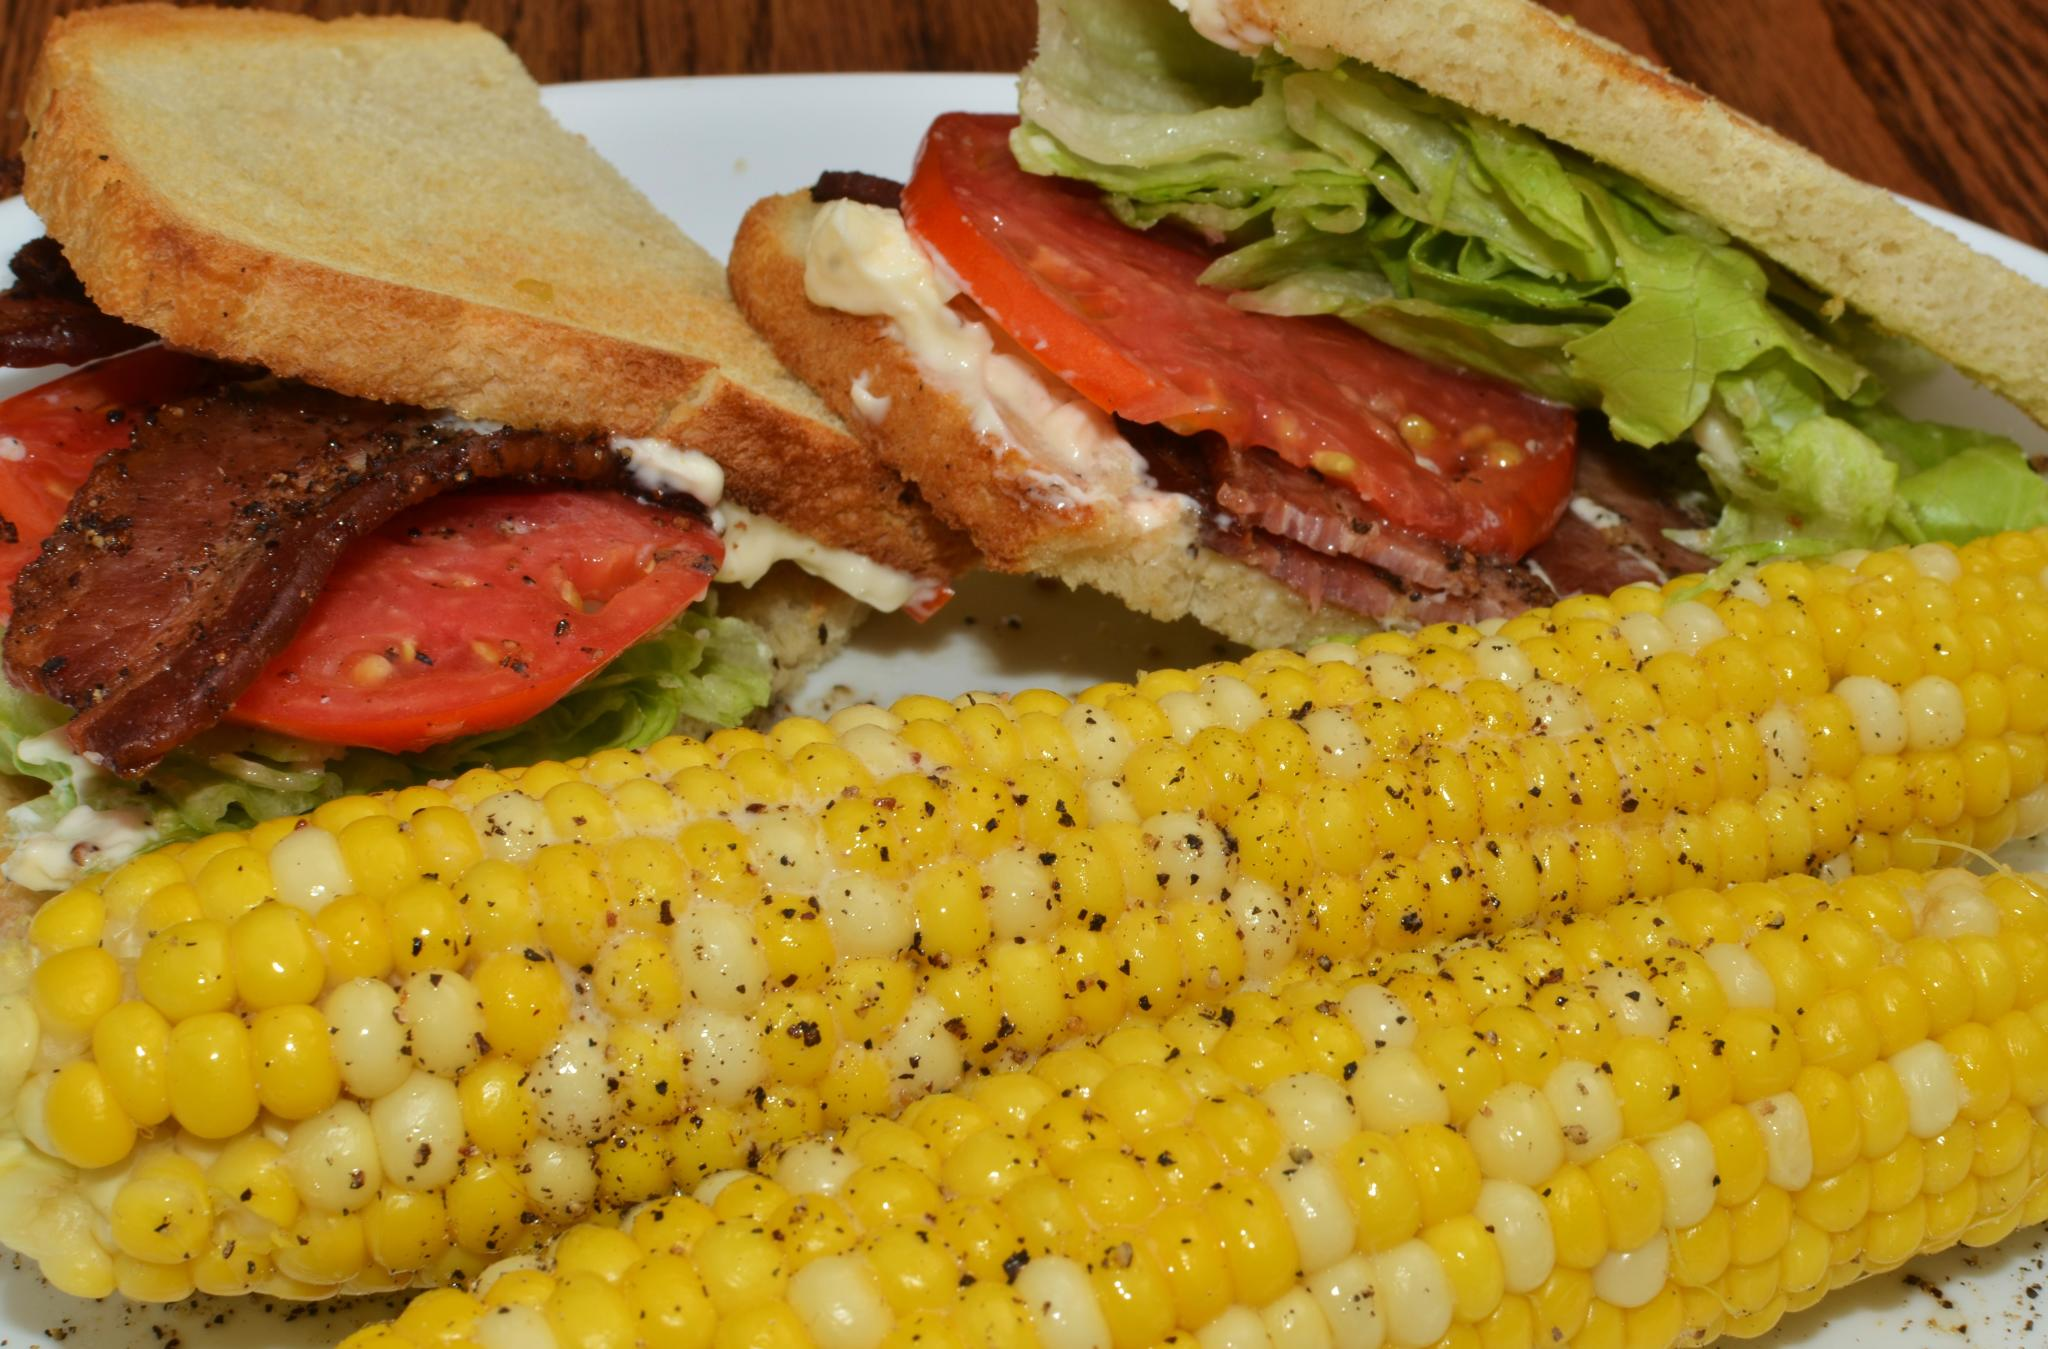 File:Mmm... buttered sweet corn and a BLT for lunch (7670120520).jpg ...